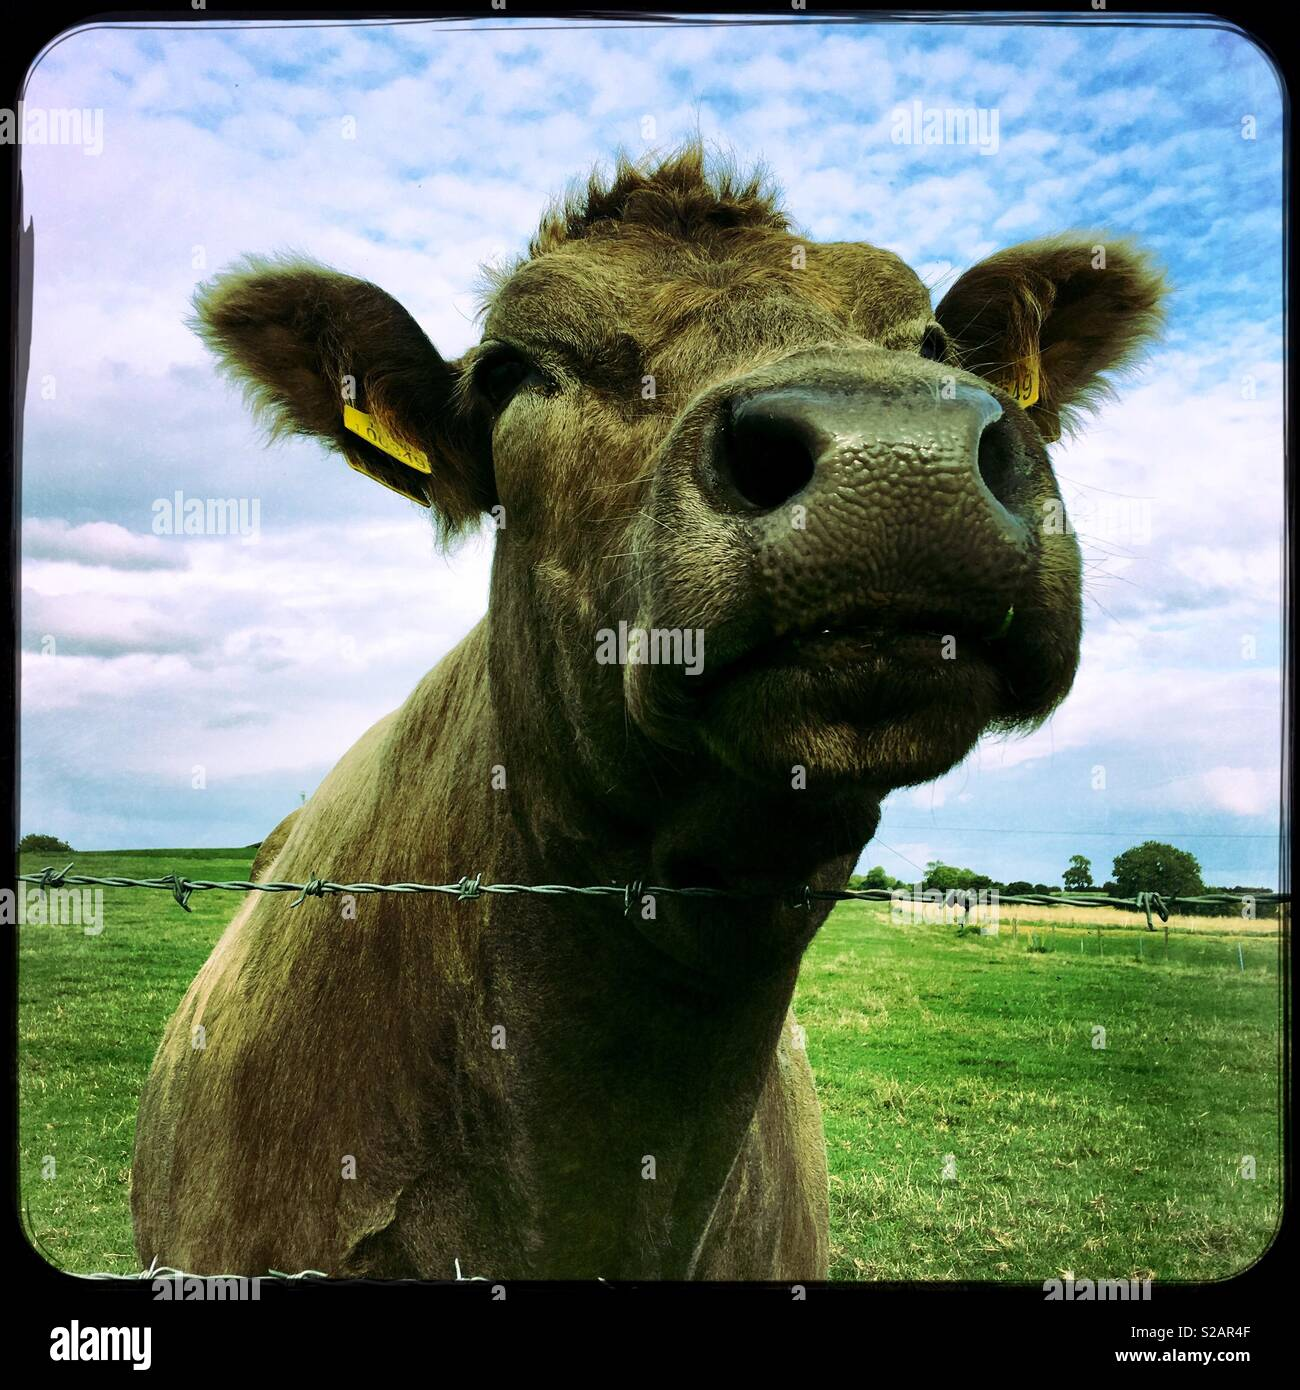 Inquisitive cow. Lincolnshire, UK. Stock Photo